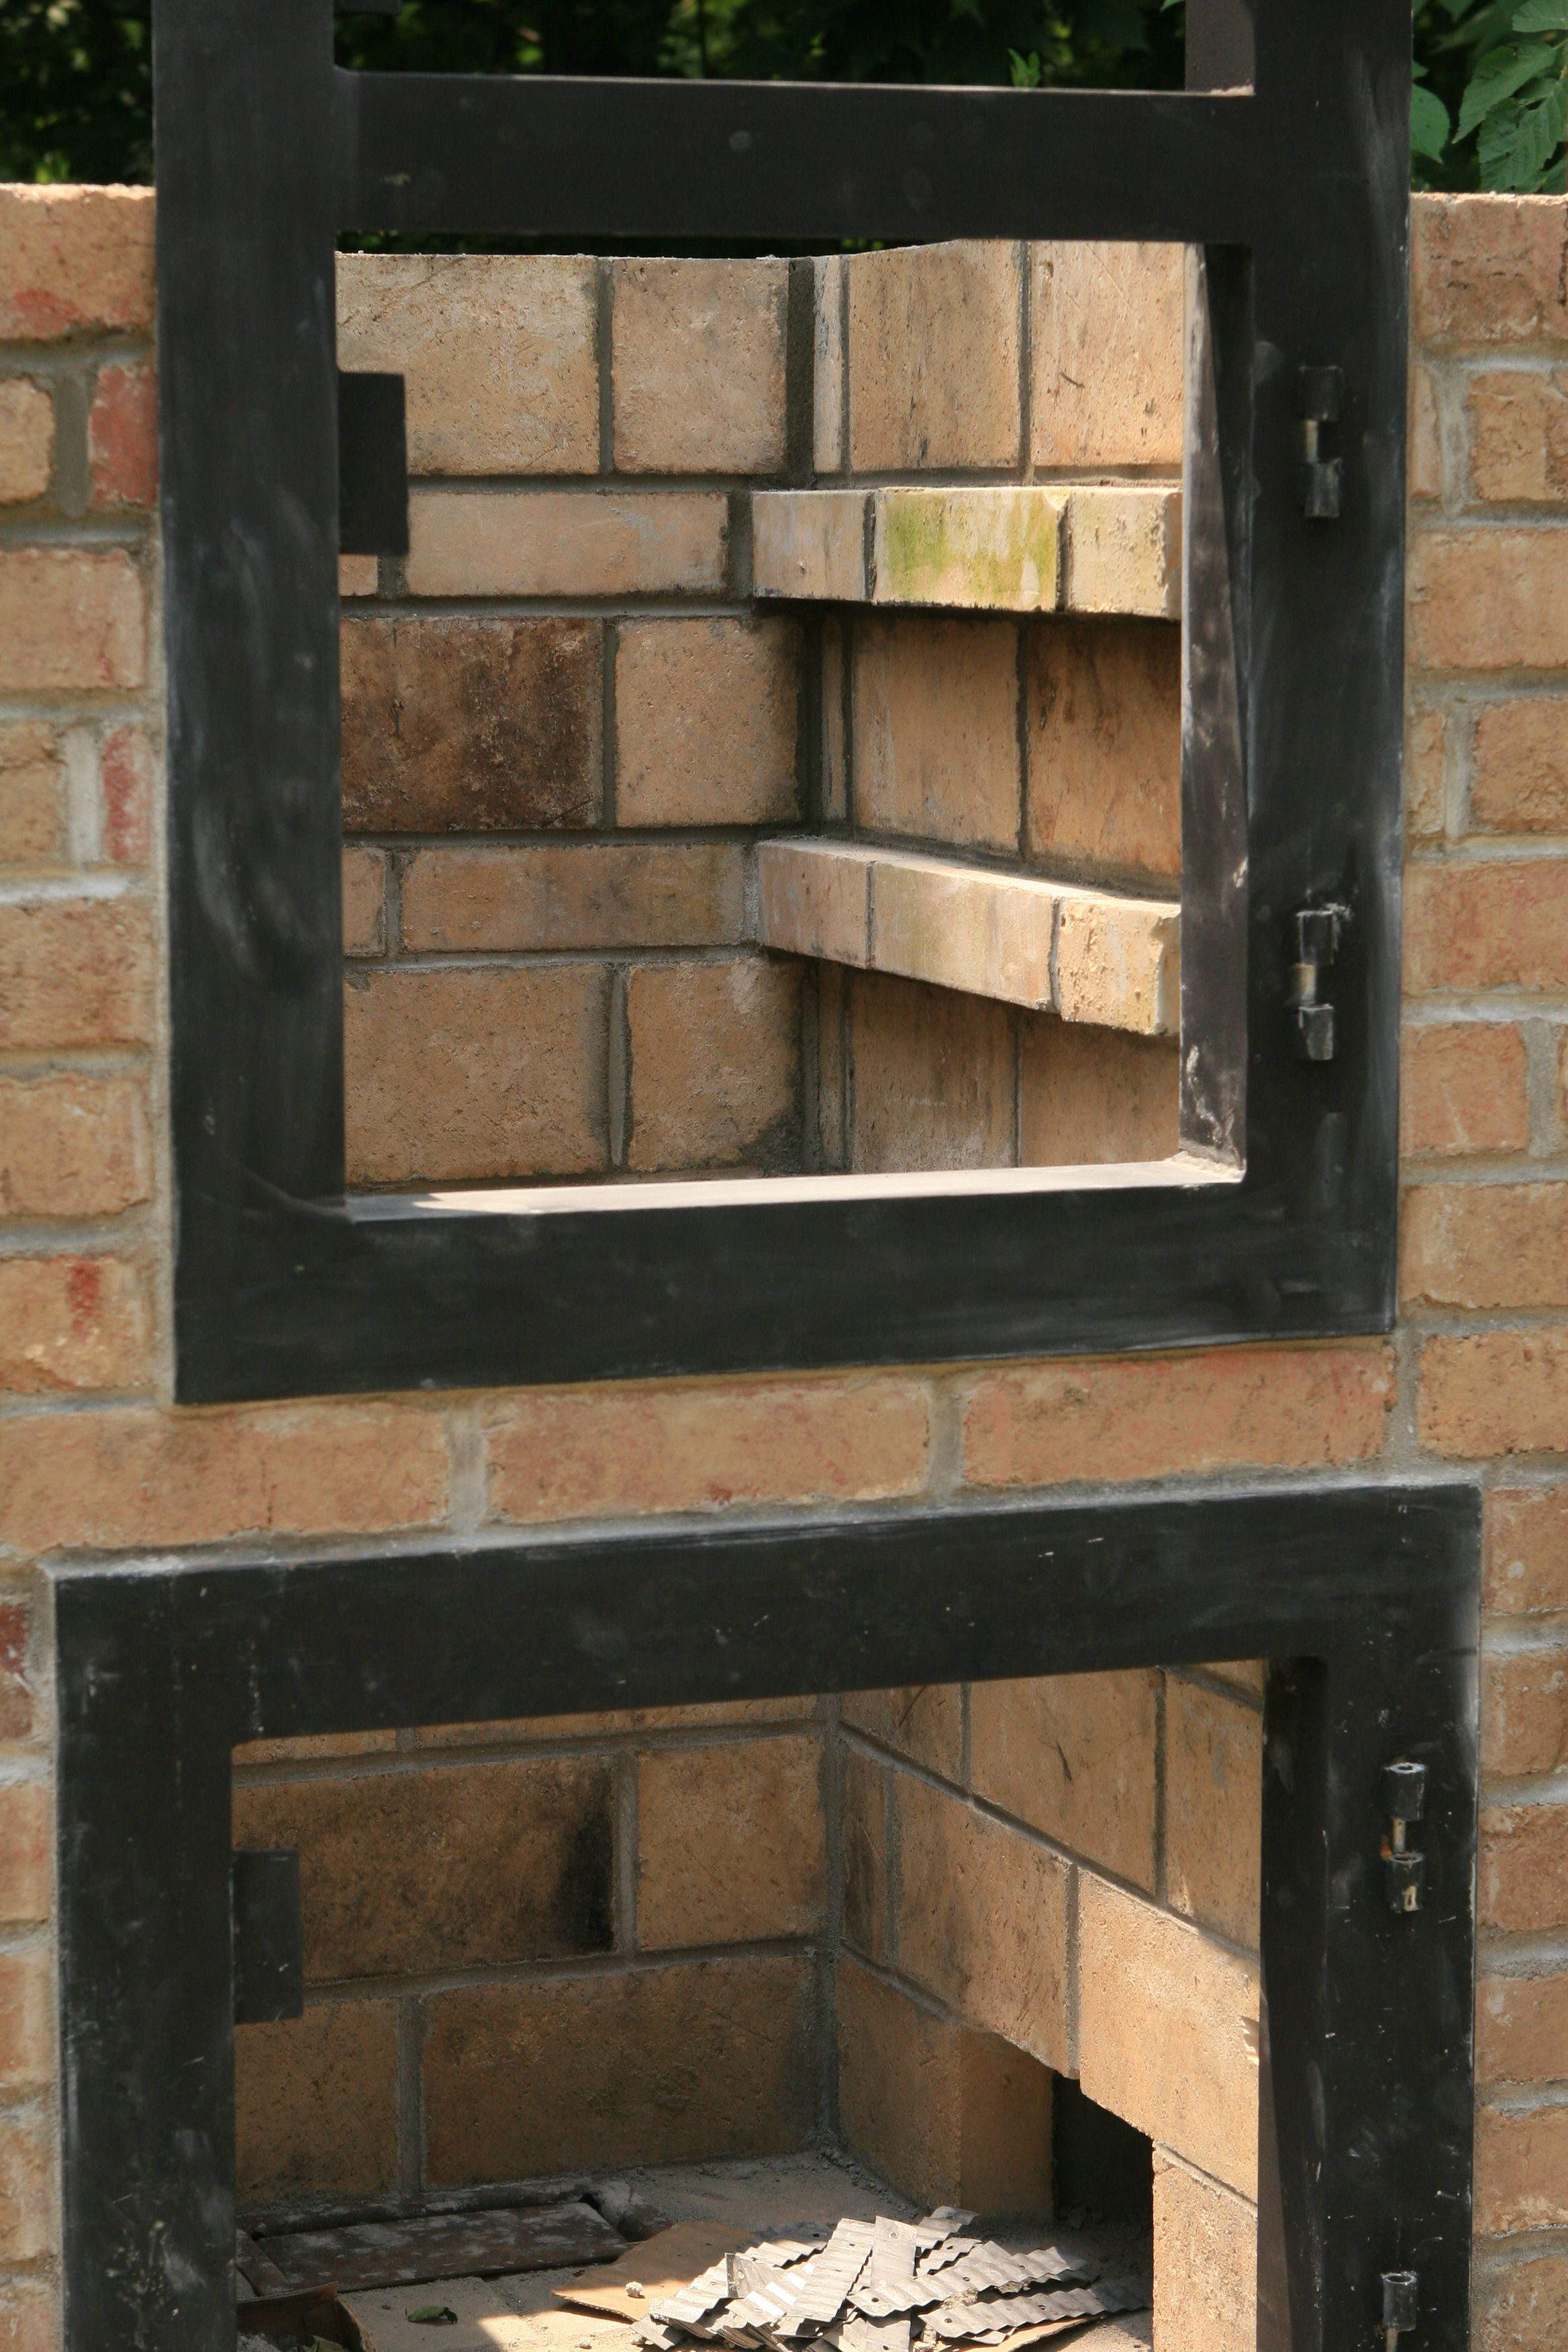 How To Build A Brick Smoker For The House Pinterest